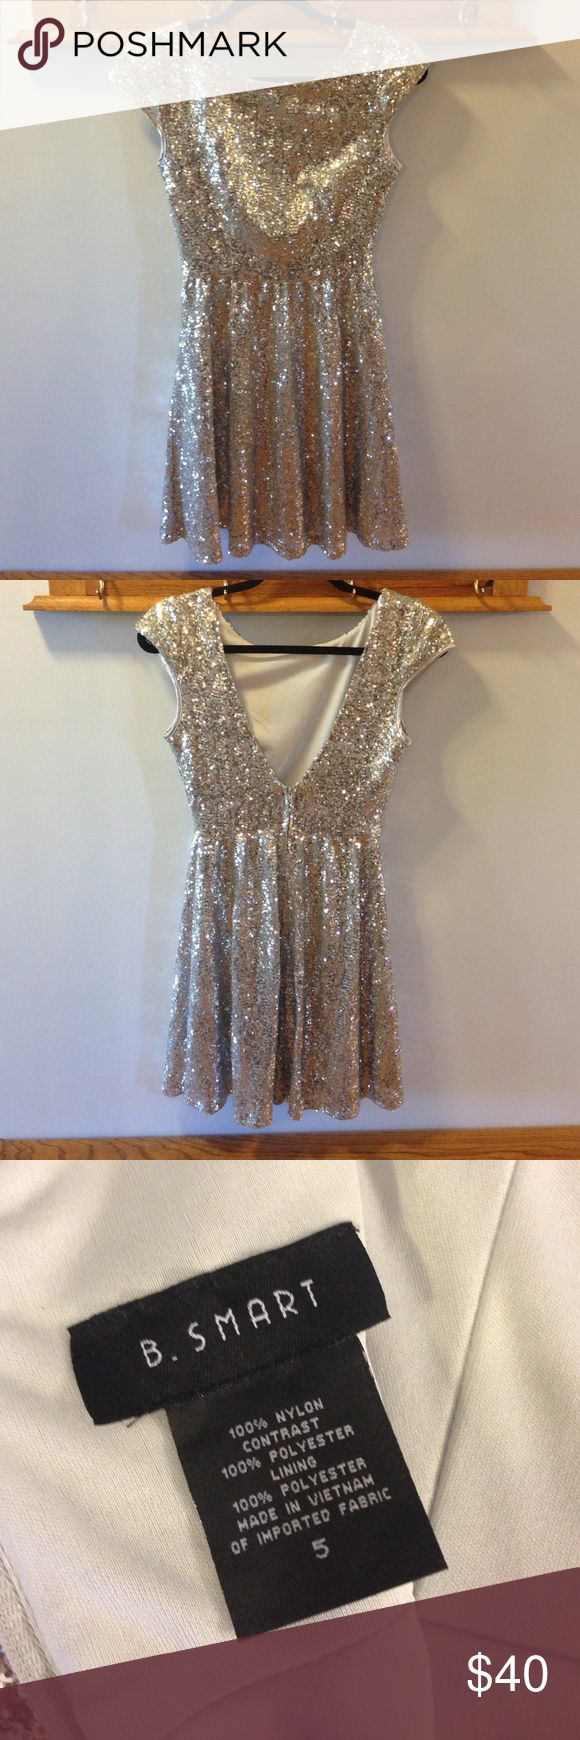 B Smart silver sequin formal dress Silver sequin formal dress, size 5, great for all formal occasions, worn once, very shiny B Smart Dresses